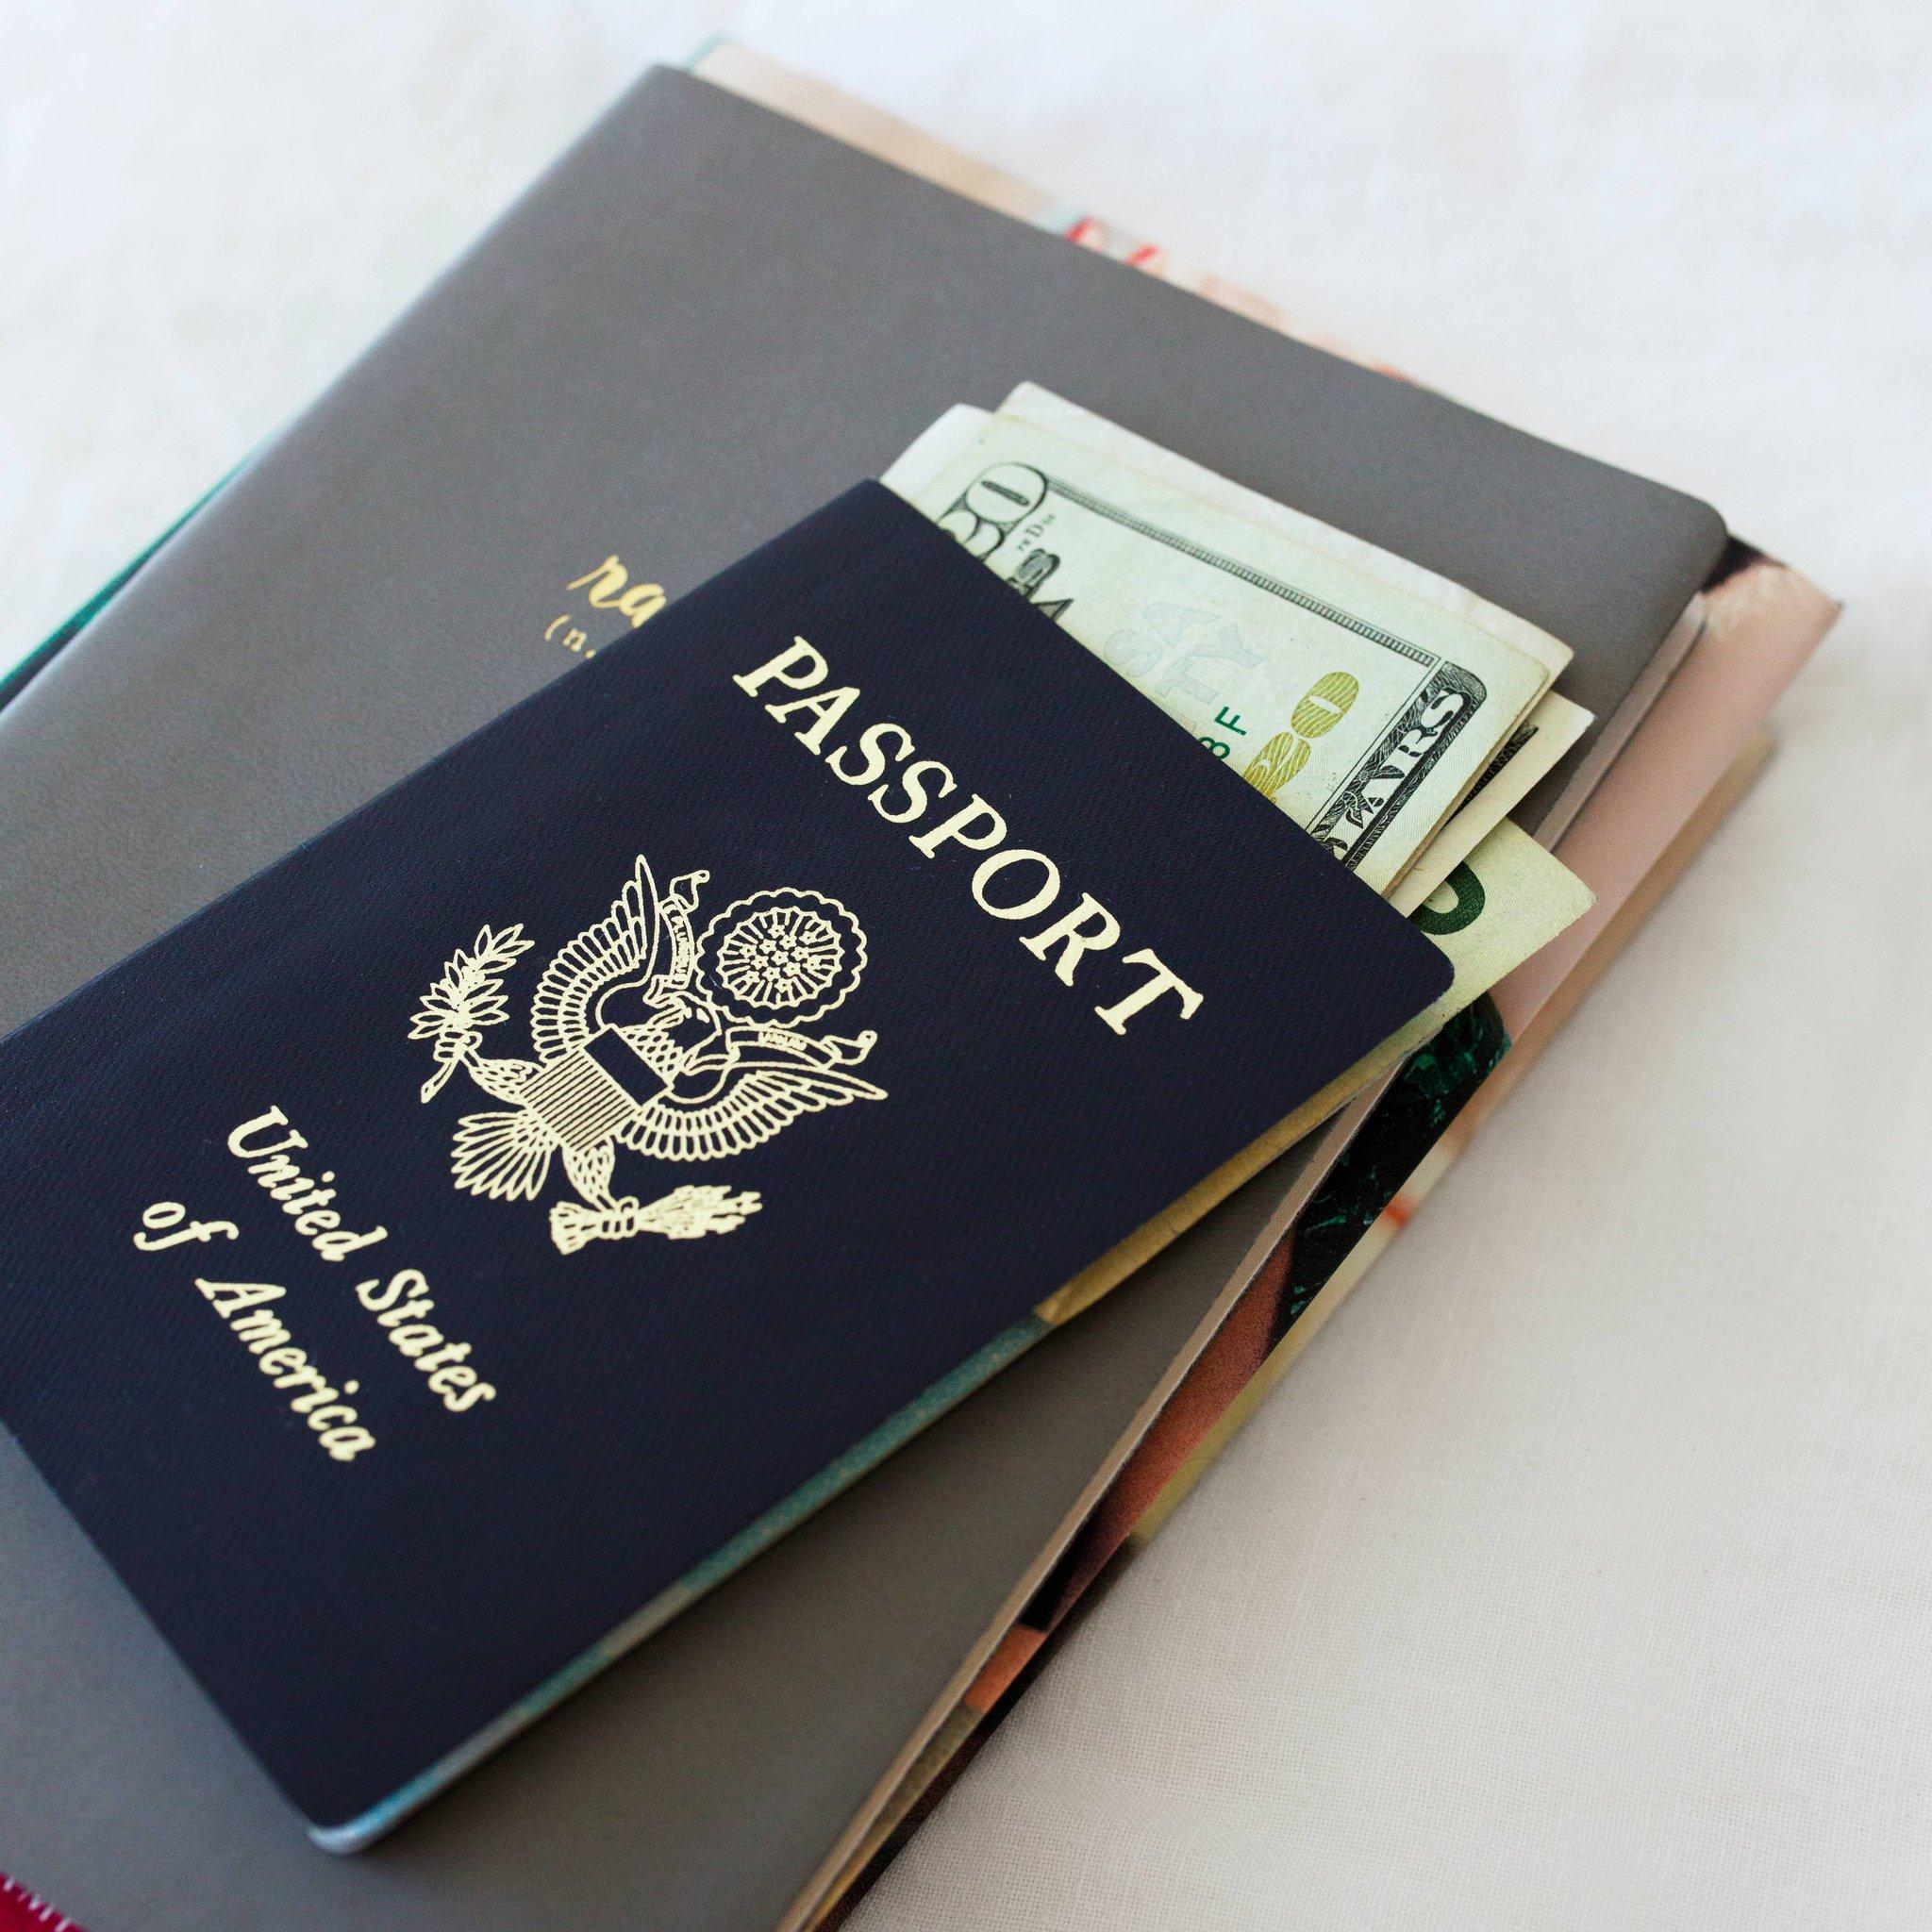 if you're traveling soon, check your passport expiration